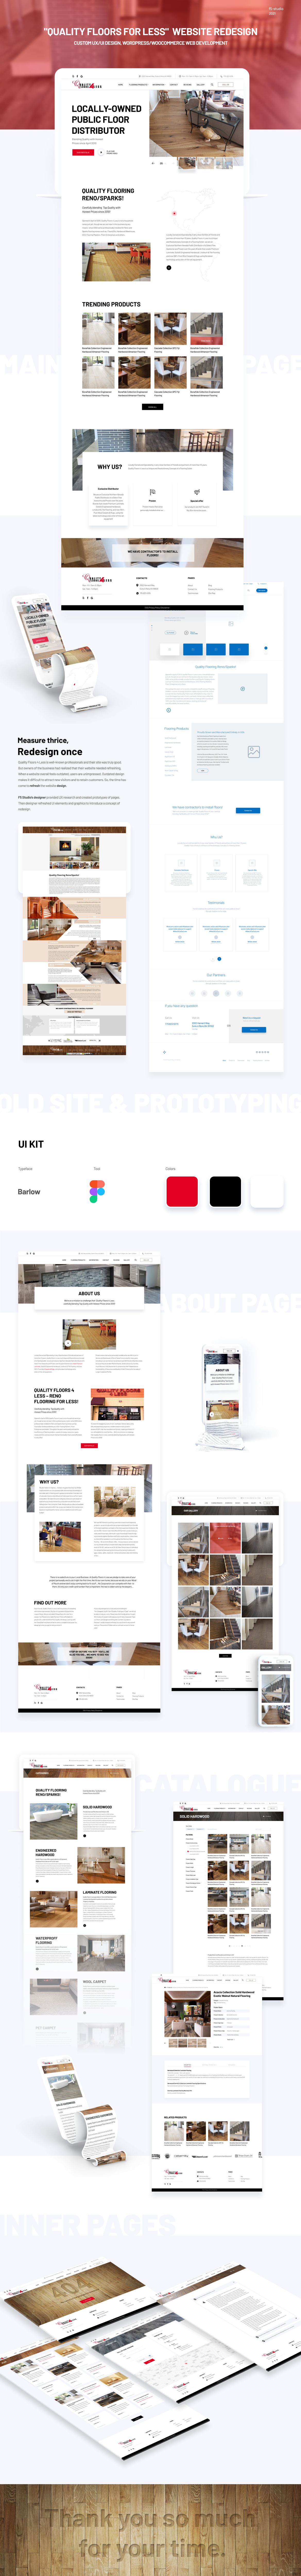 The full presentation shows more details of website redesign process